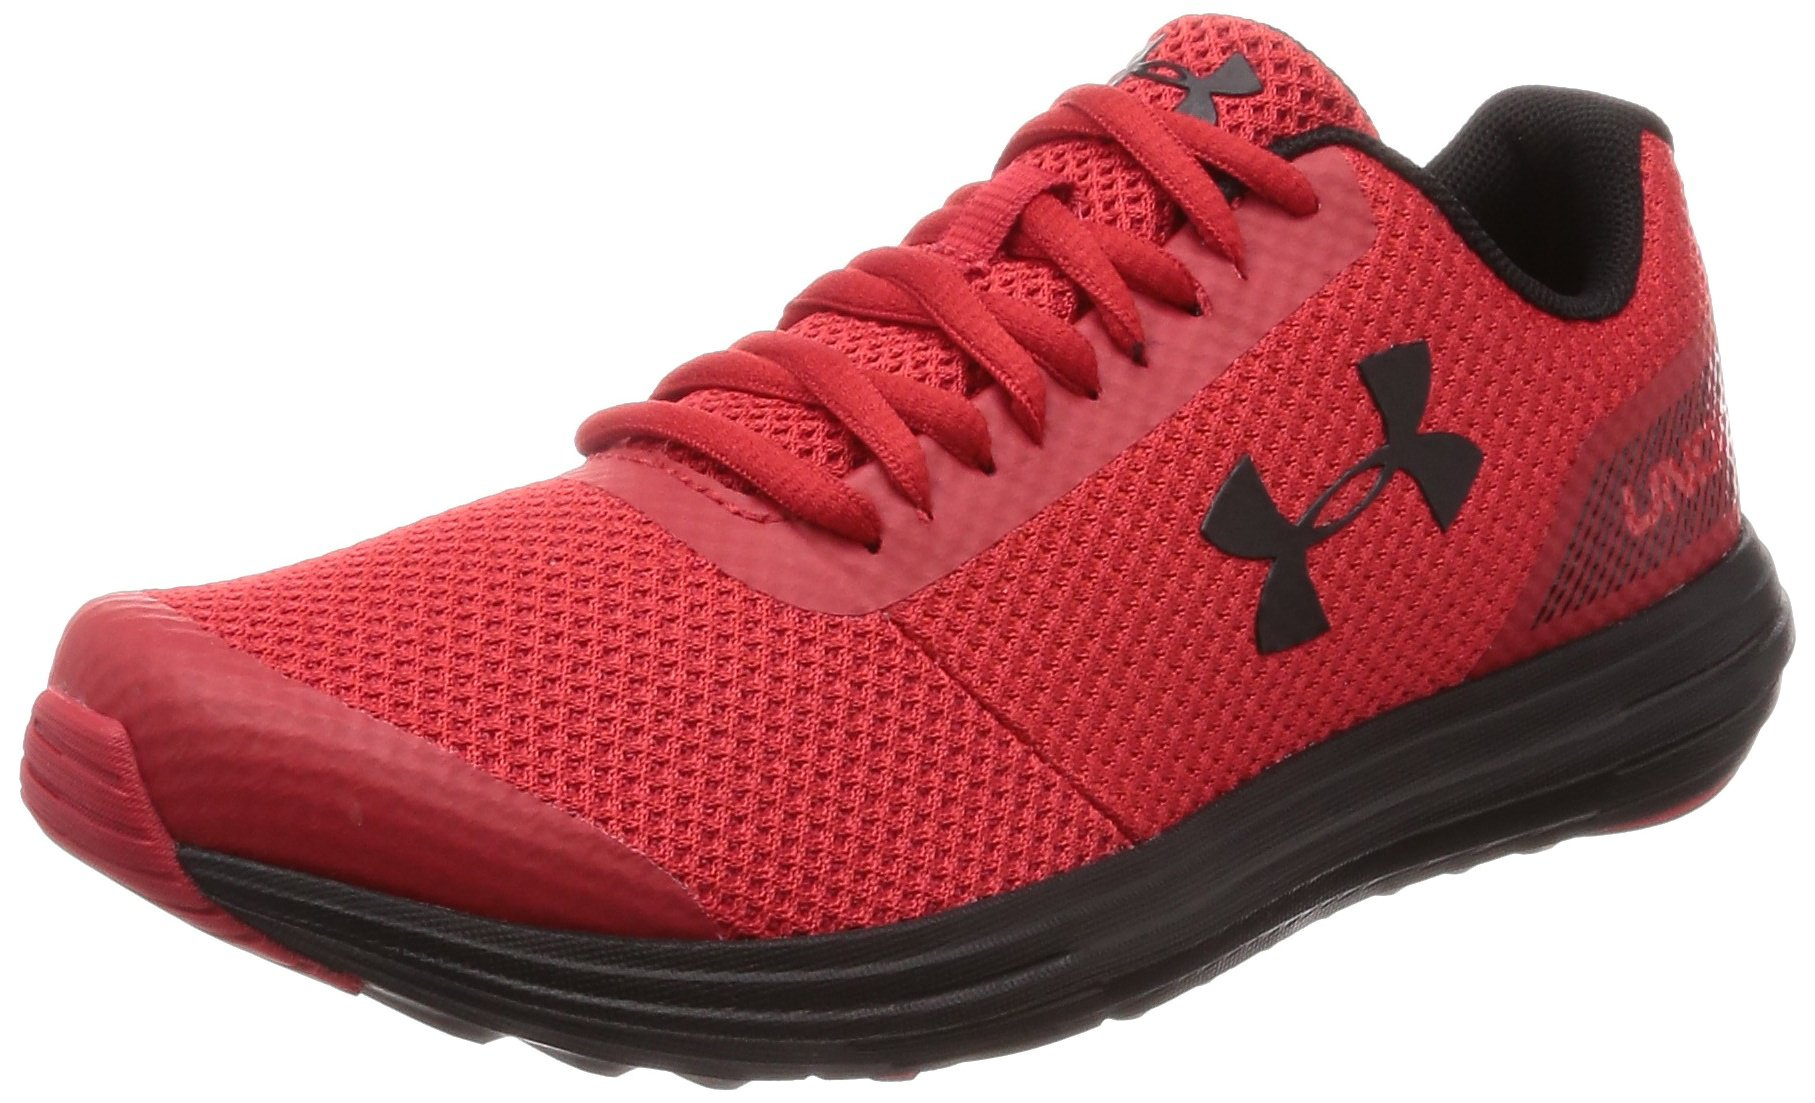 Under Armour Boys' Grade School Surge RN Sneaker Red (600)/Black 4 by Under Armour (Image #1)